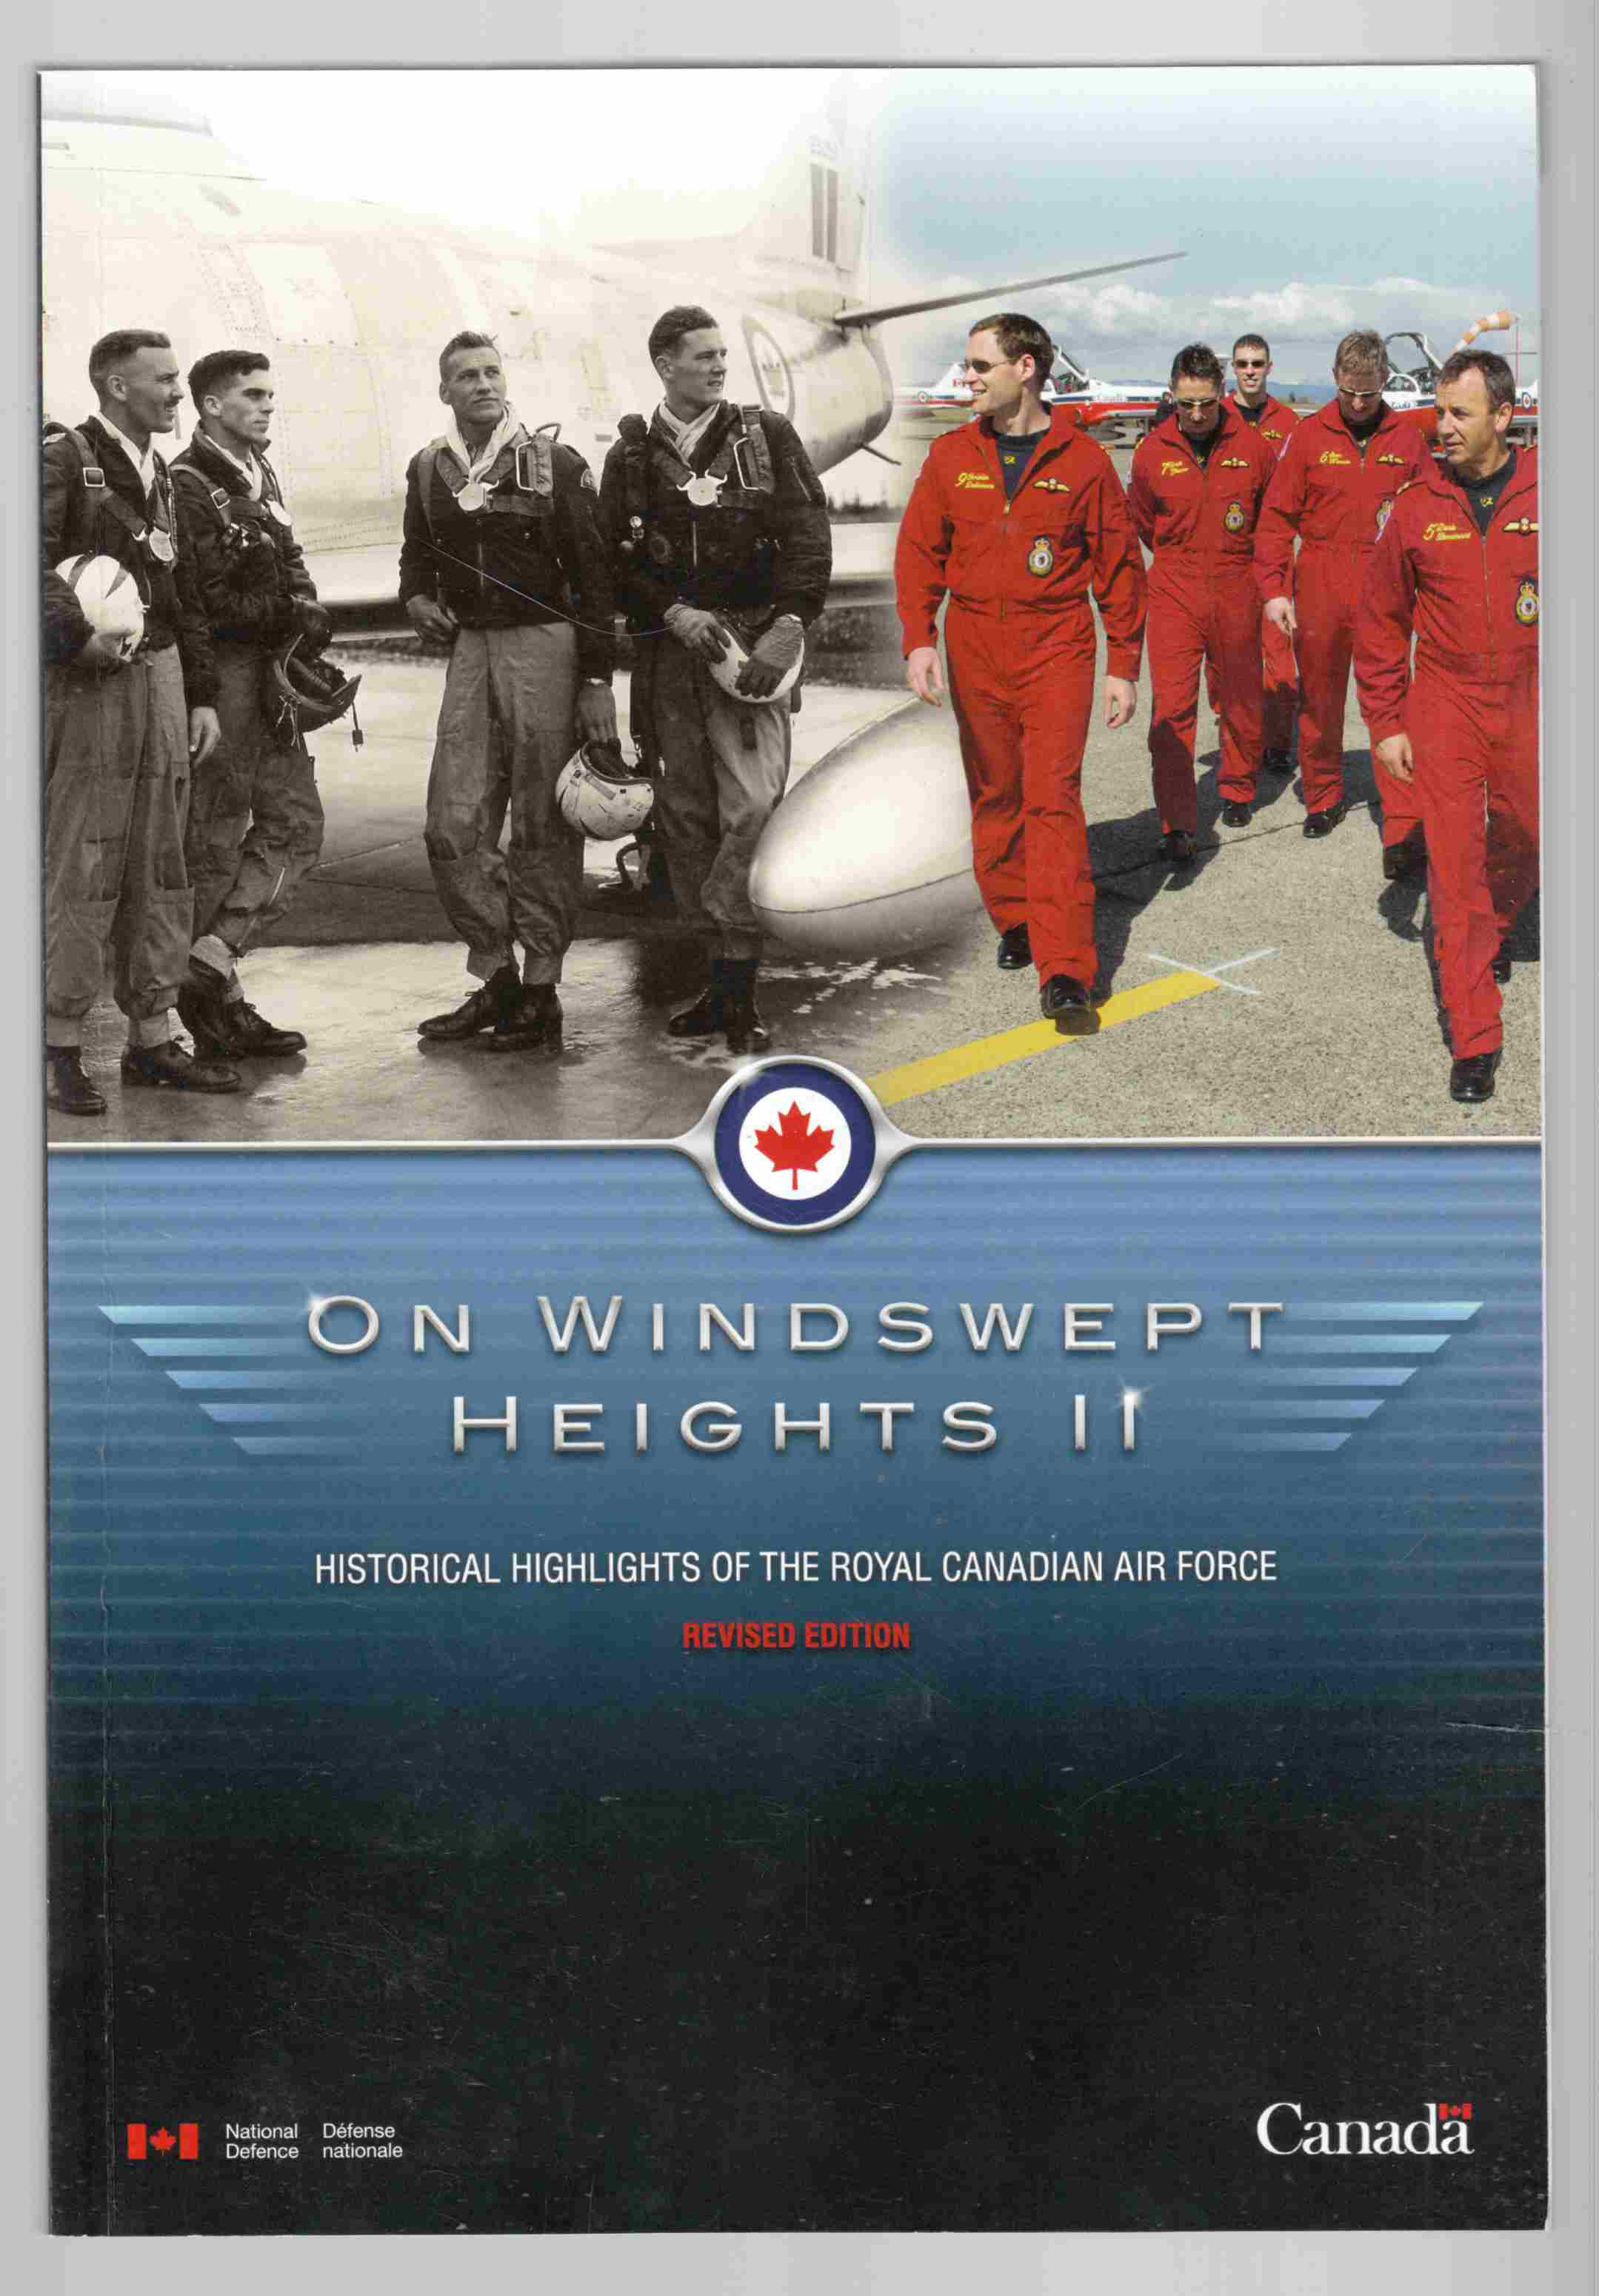 Image for On Windswept Heights II / Sur Des Sommets Balayes Par Les Vents II Historical Highlights of the Royal Canadian Air Force / Faits Saillaints Historiques De L'Aviation Royale Canadienne